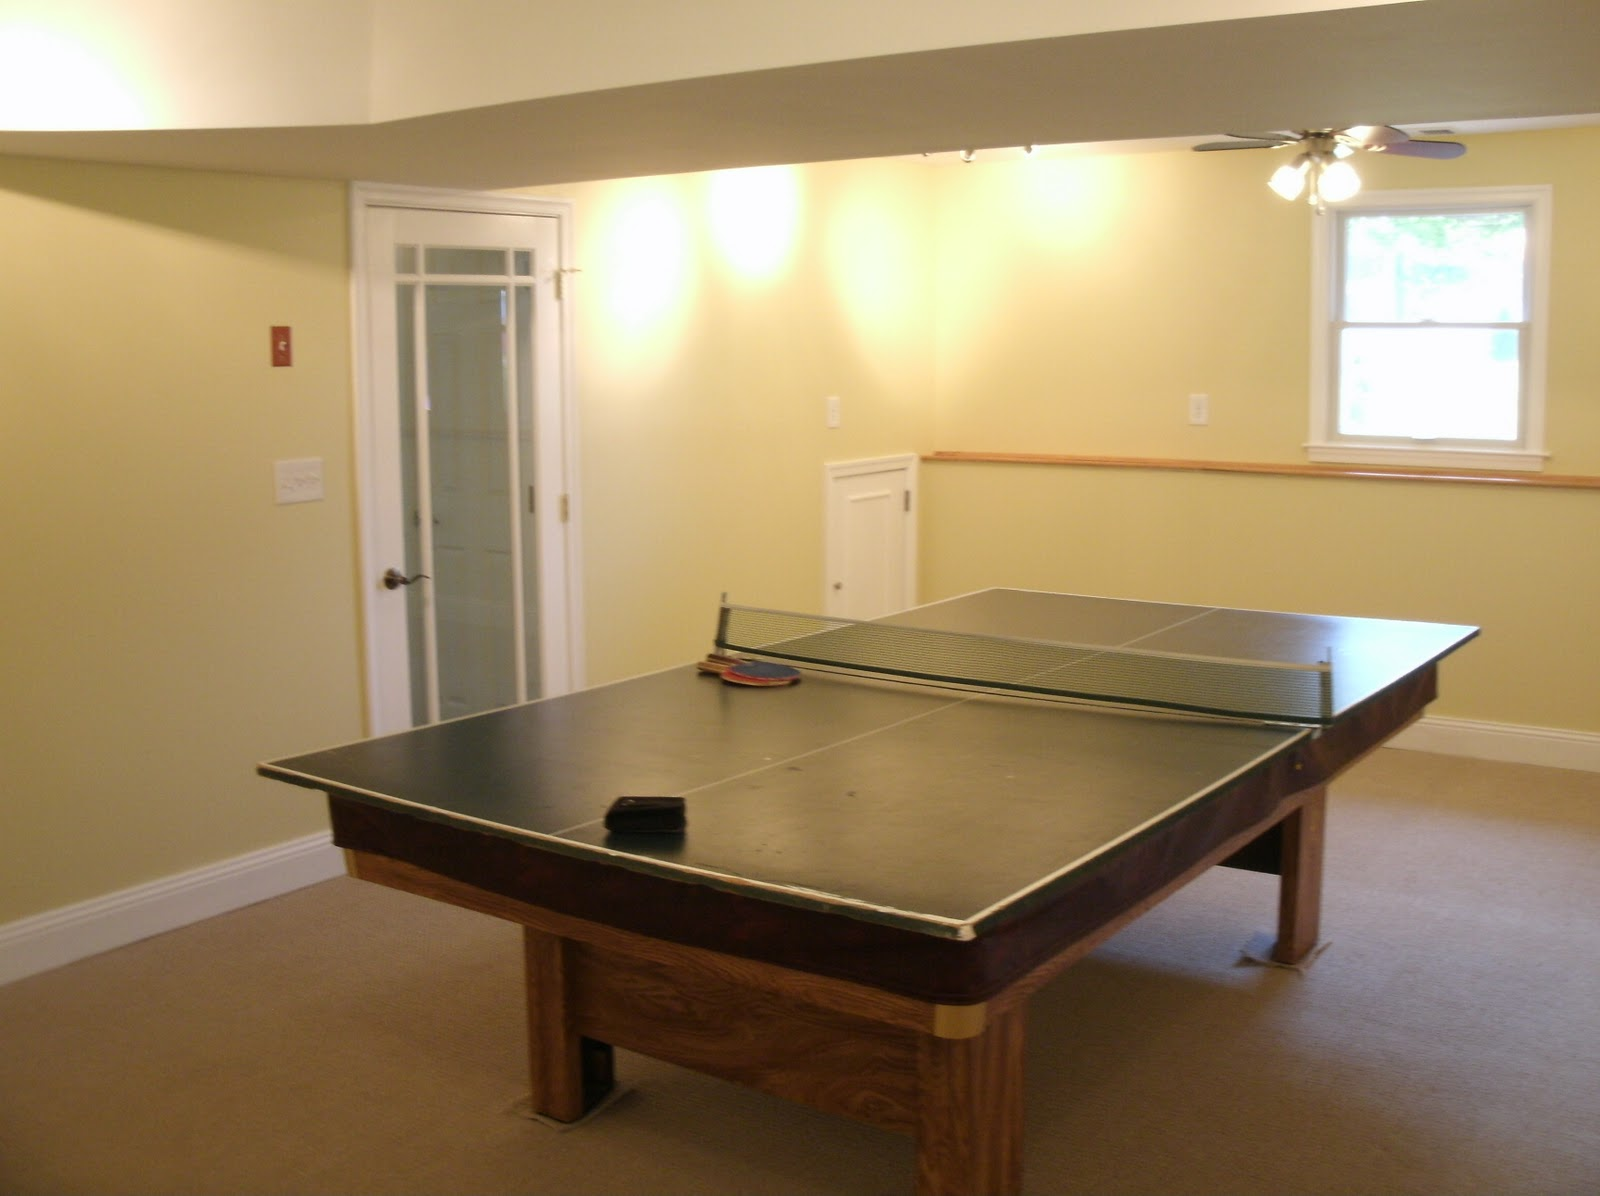 Home remodeling and improvements tips and how to 39 s Basement game room ideas